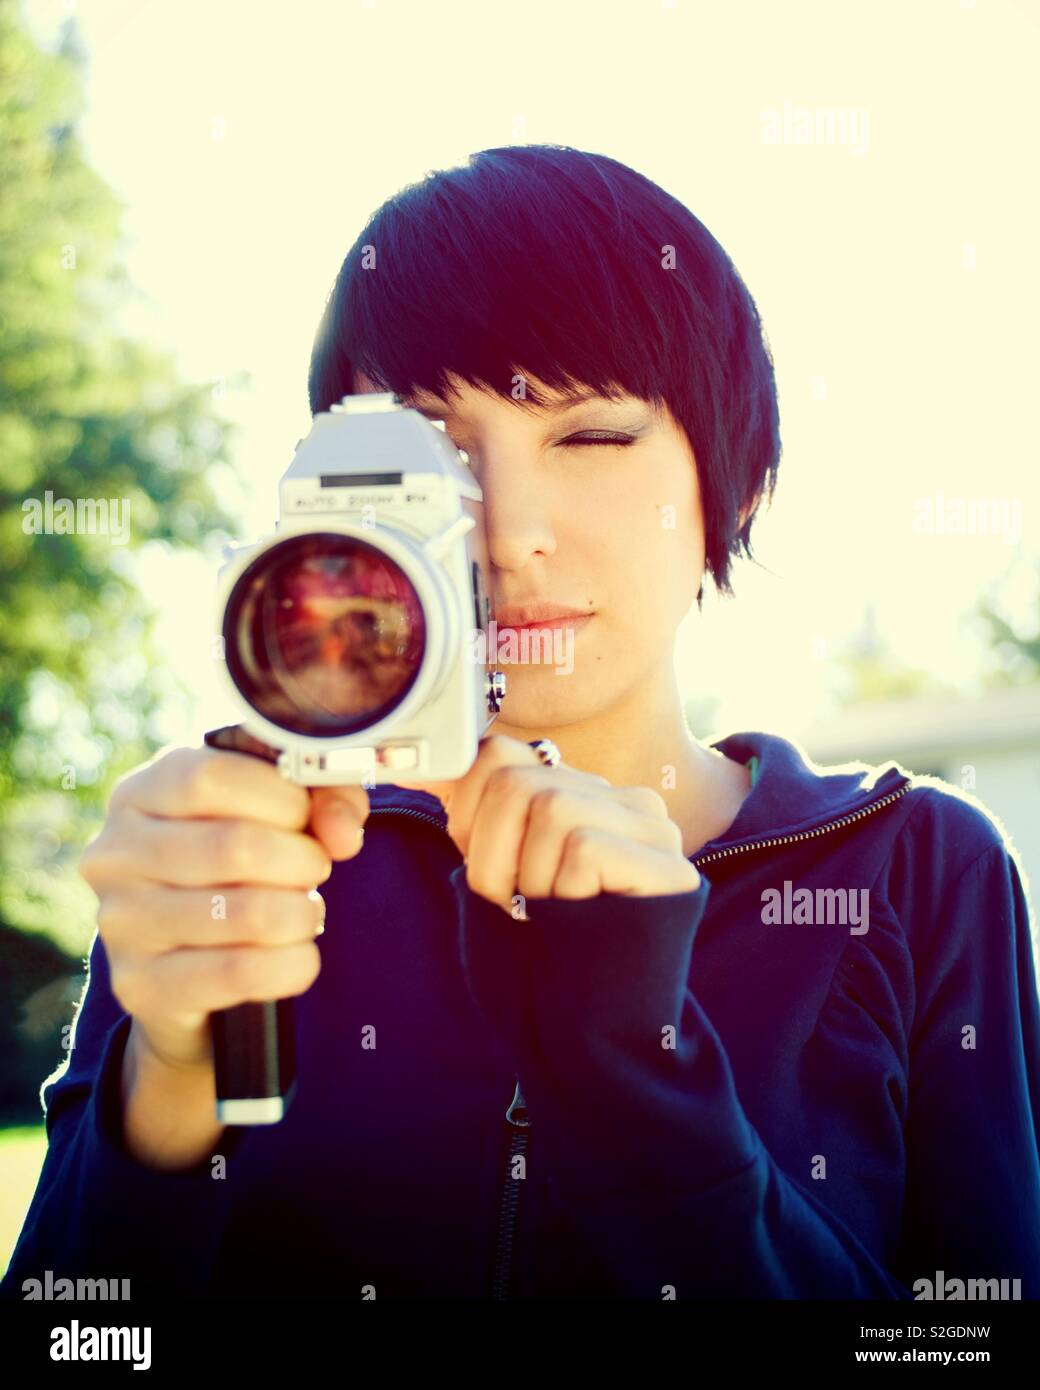 Cute girl with short hair in her early twenties holding a vintage super 8mm film camera outdoors on a sunny day. Photo has a color crossed process effect. - Stock Image